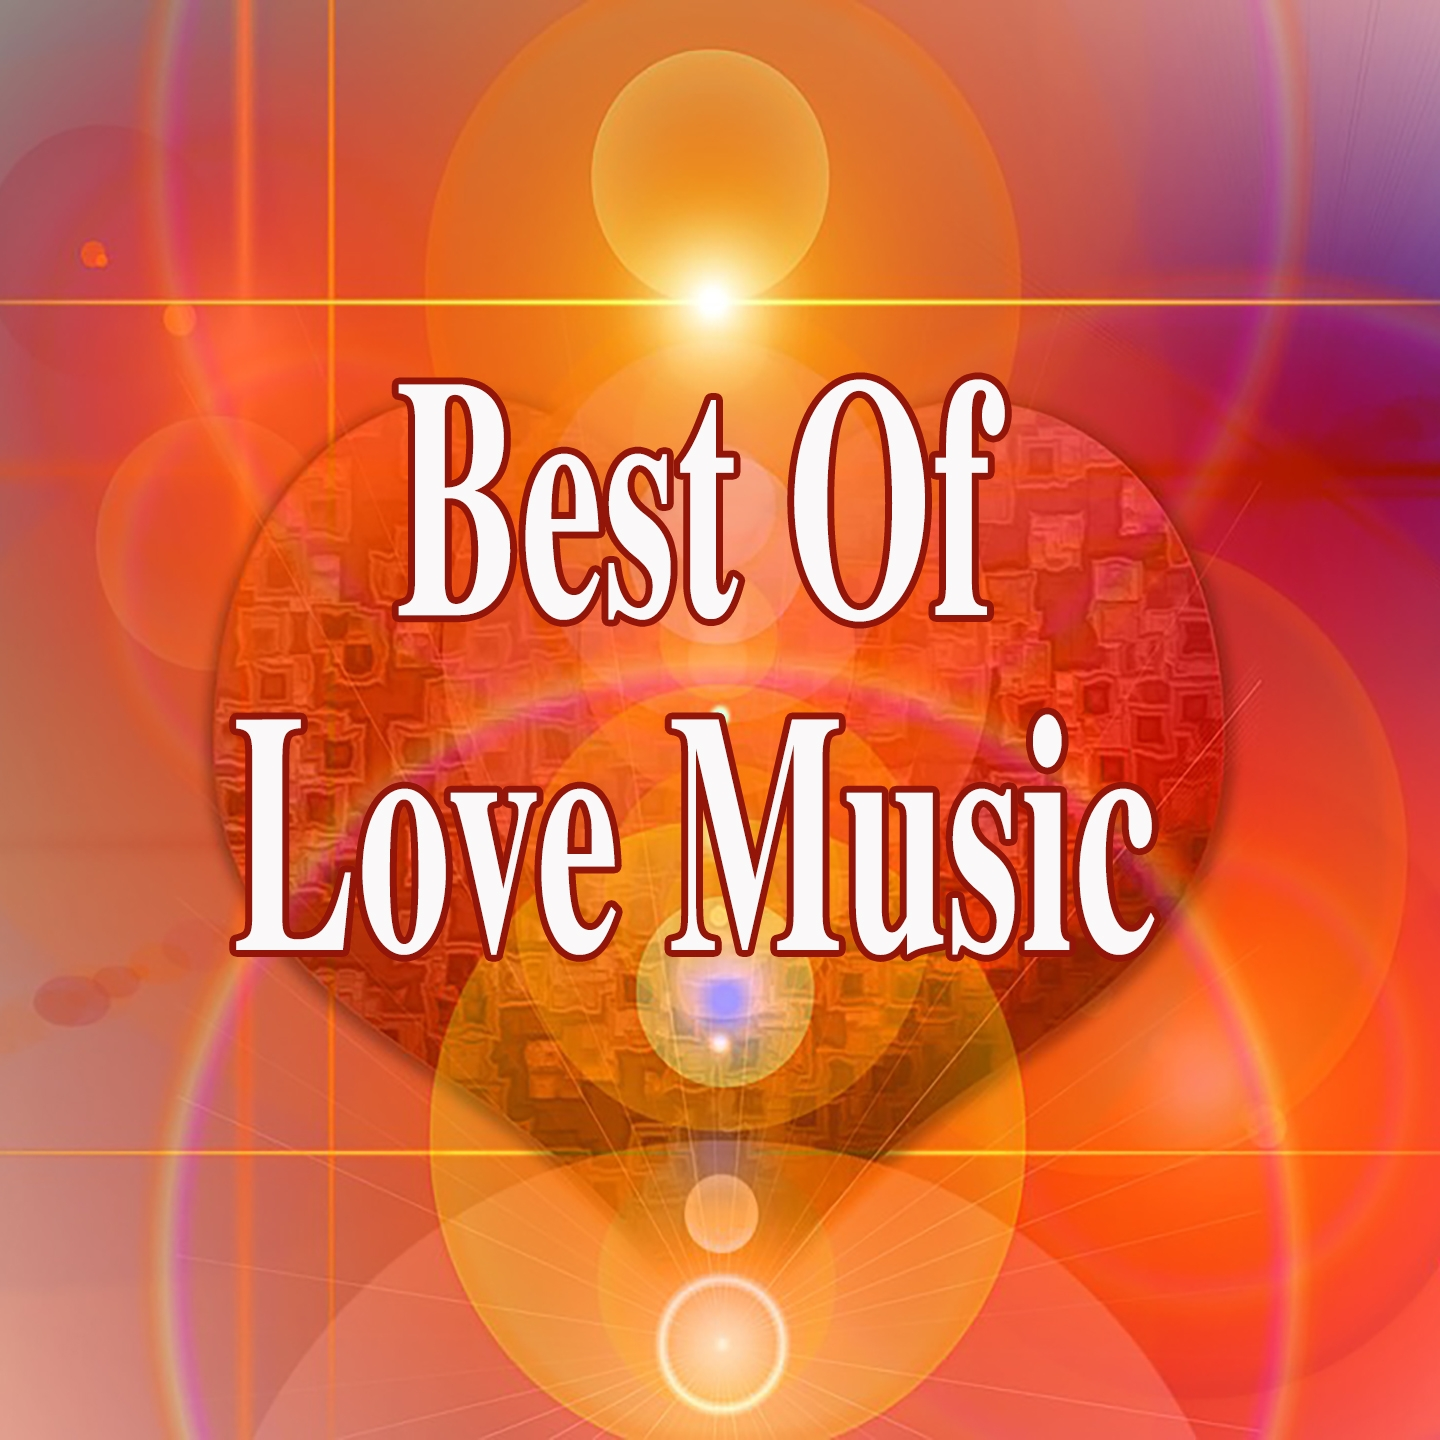 Best of Love Music